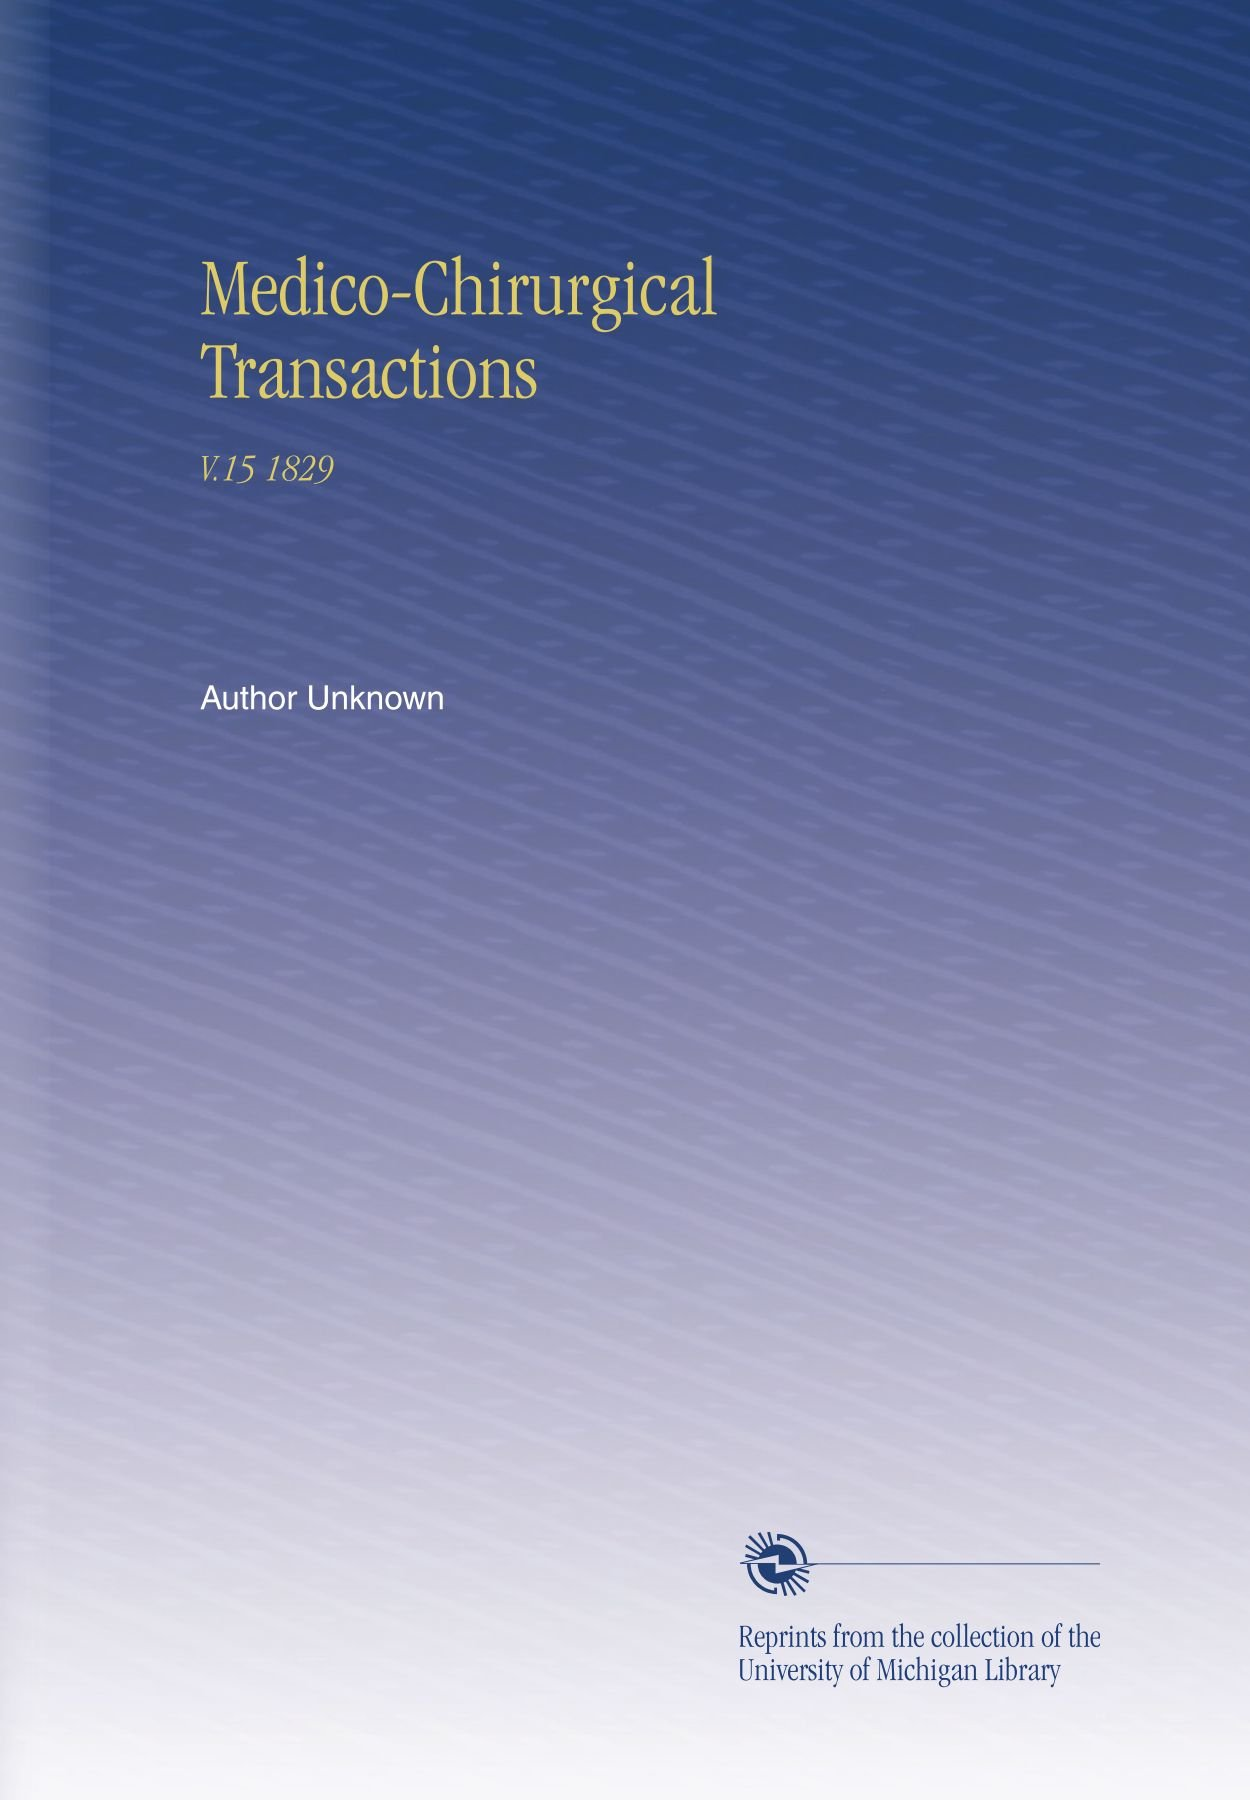 Medico-Chirurgical Transactions: V.15 1829 ebook